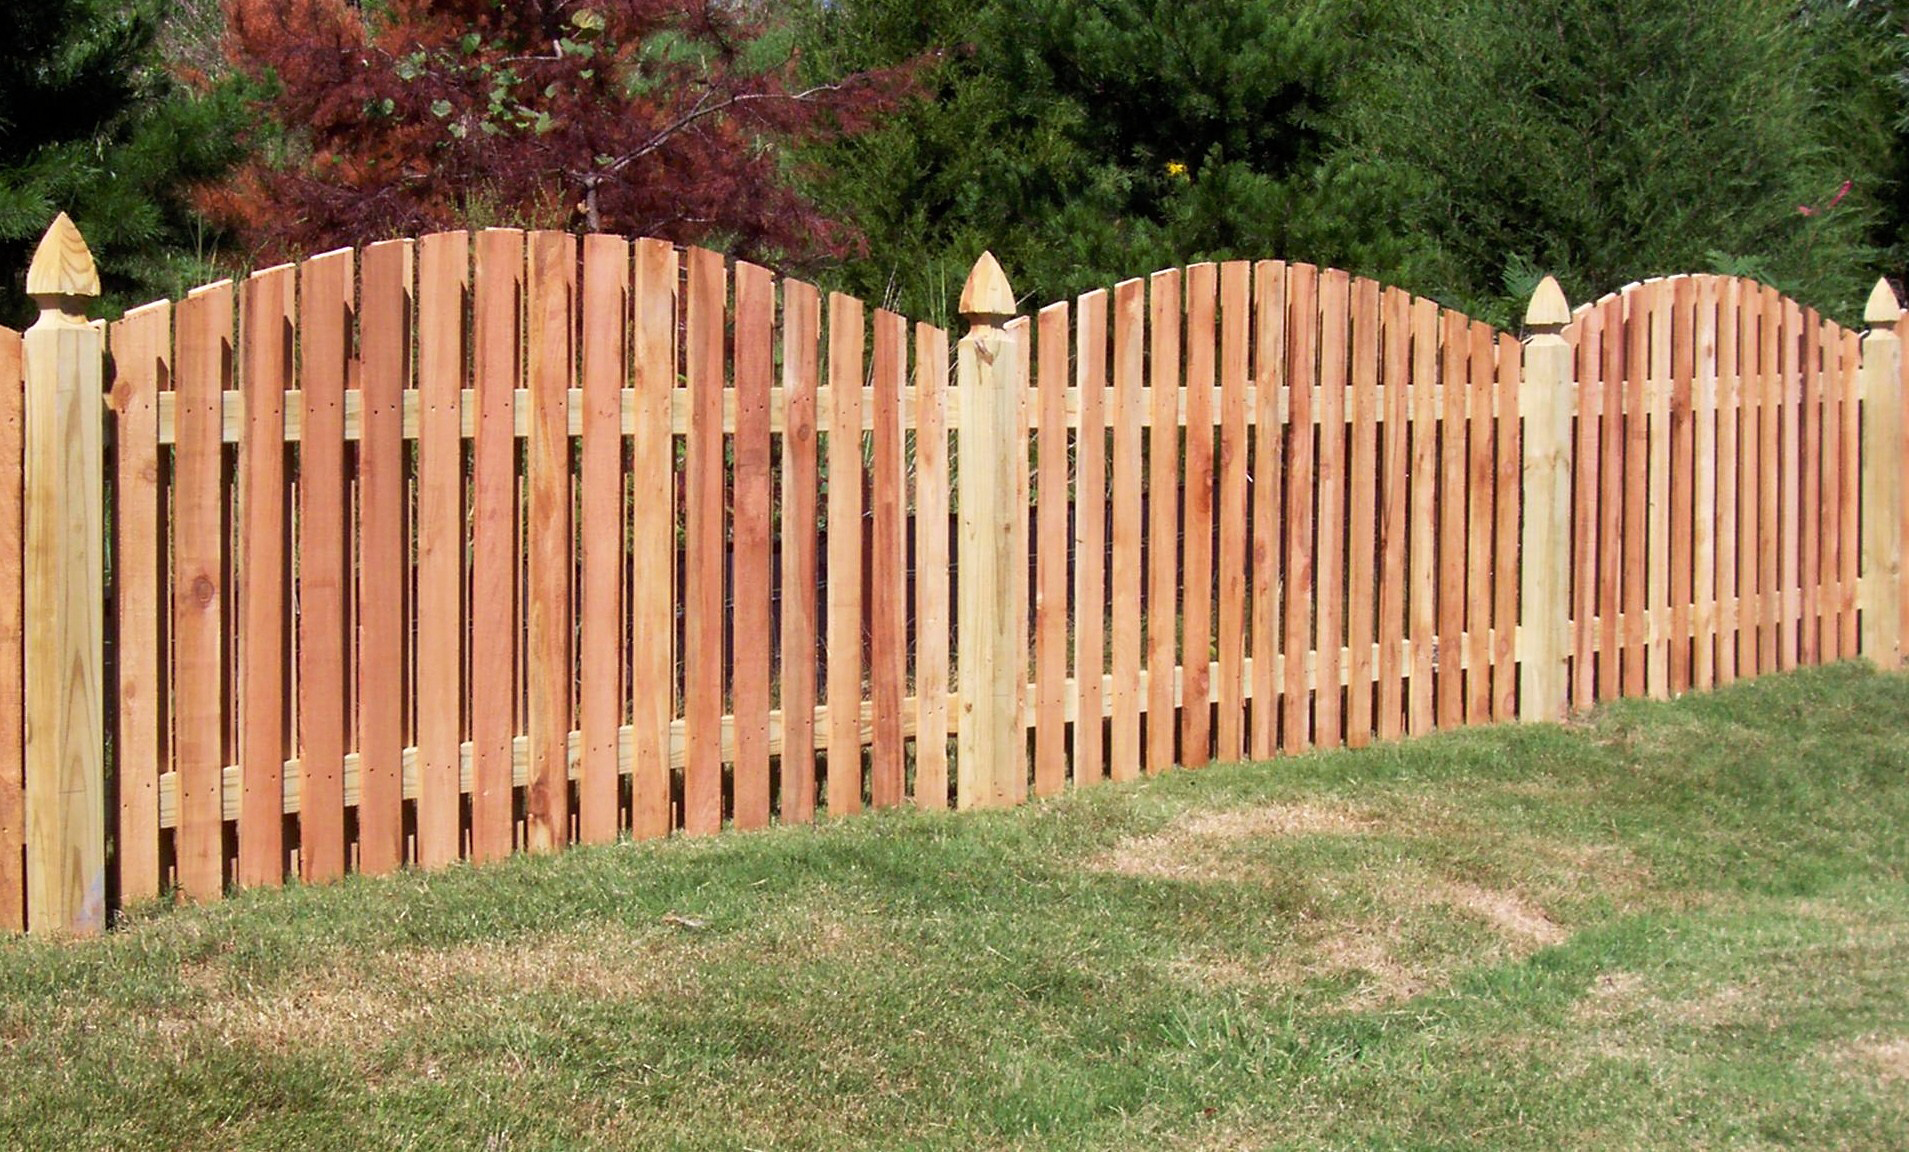 1000+ images about fence ideas on Pinterest   Front yard fence